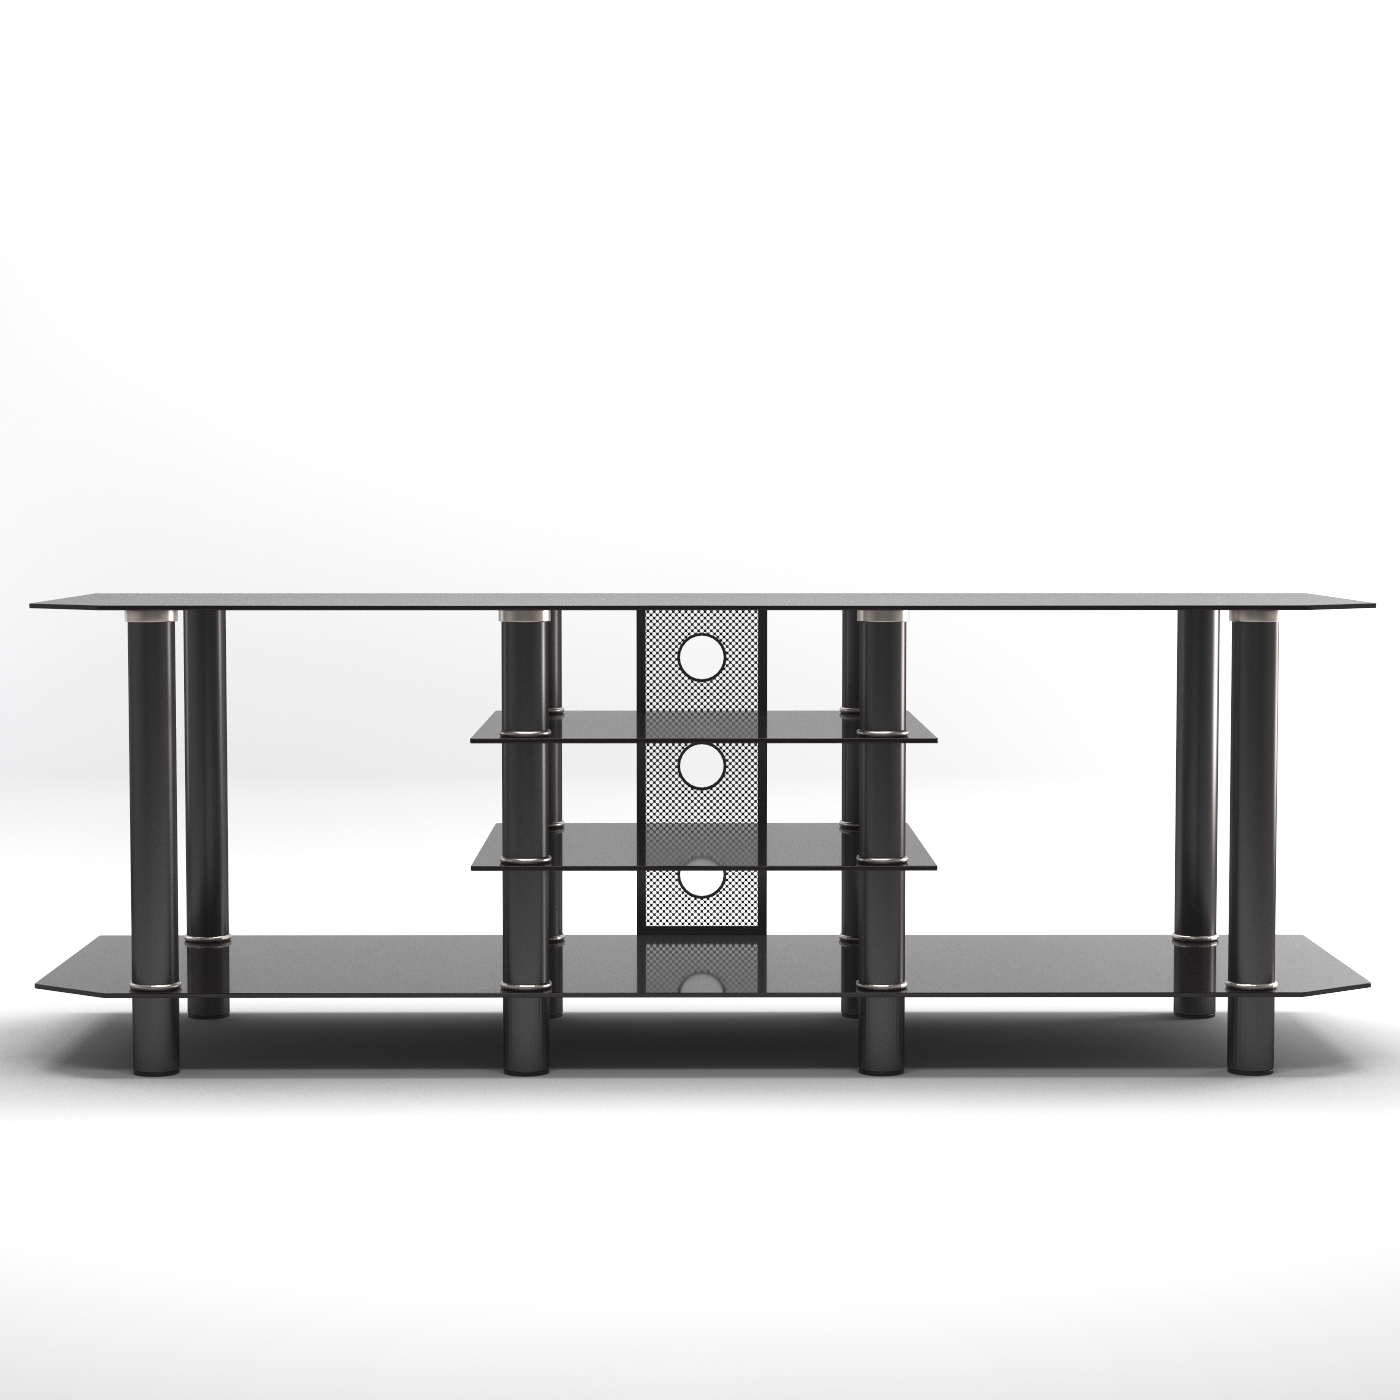 2018 Salerno 60 Inch Glass Tv Stand In Black In Modern Glass Tv Stands (View 2 of 20)